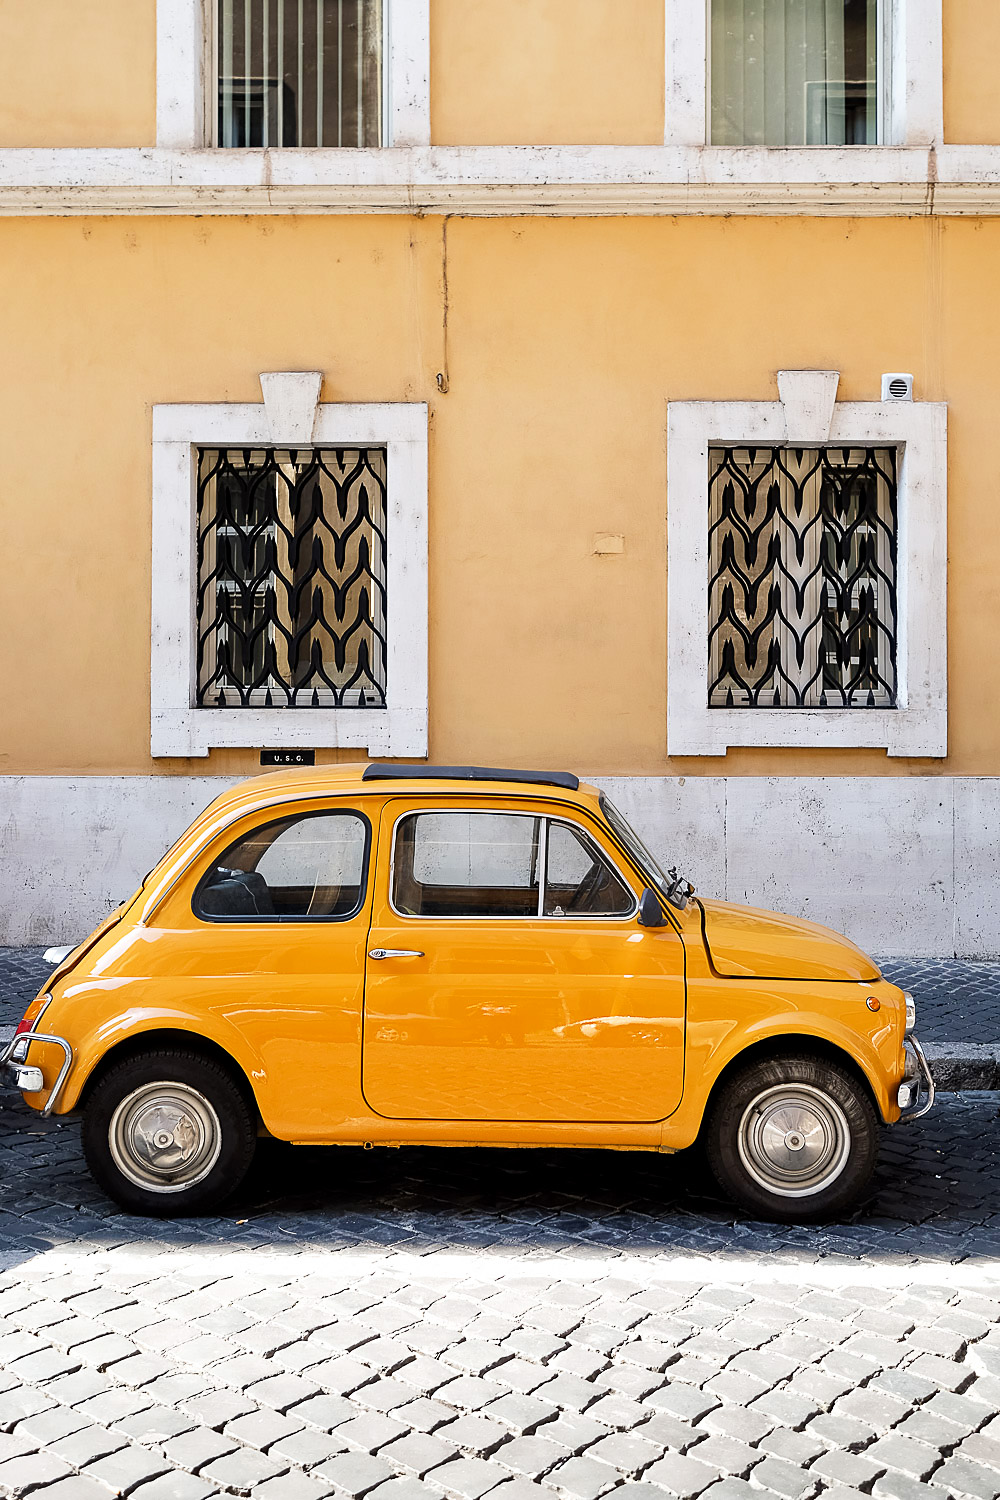 Yellow Fiat 500 car in Rome Italy